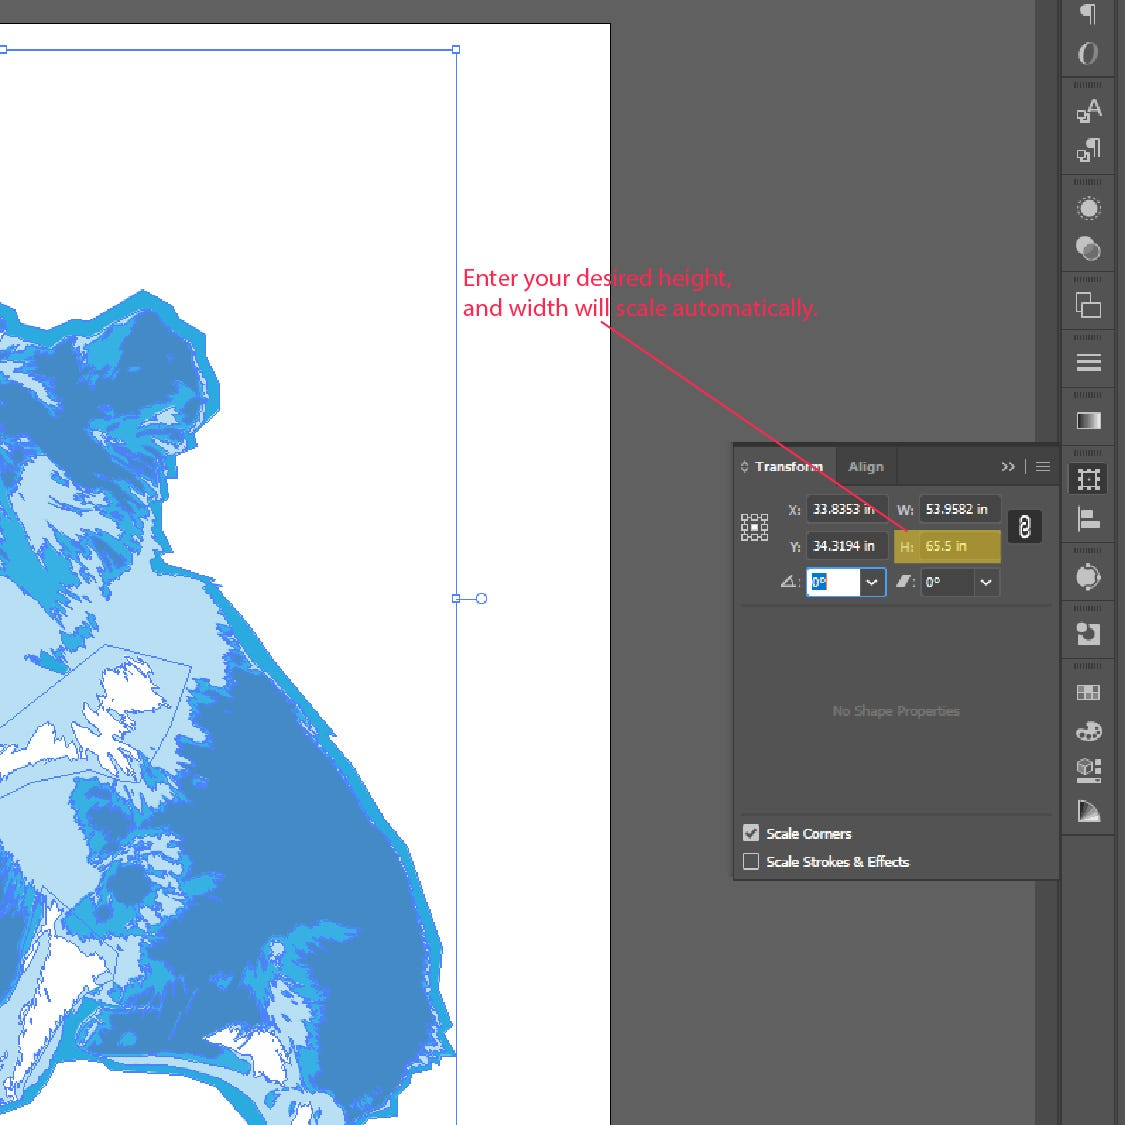 Step 5: How to Scale and Resize Objects in Adobe Illustrator